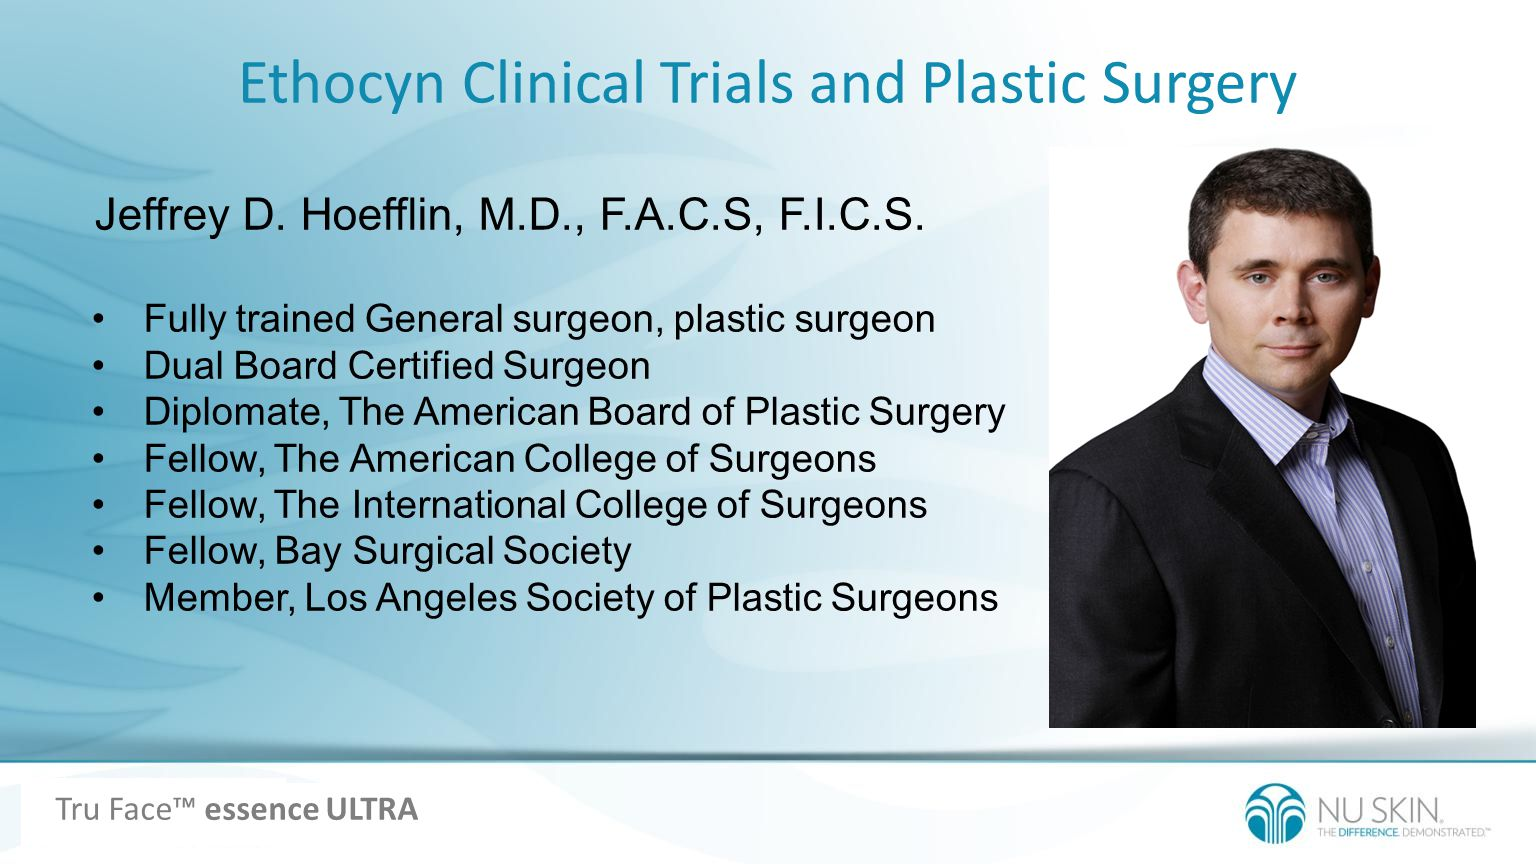 Ethocyn Clinical Trials and Plastic Surgery